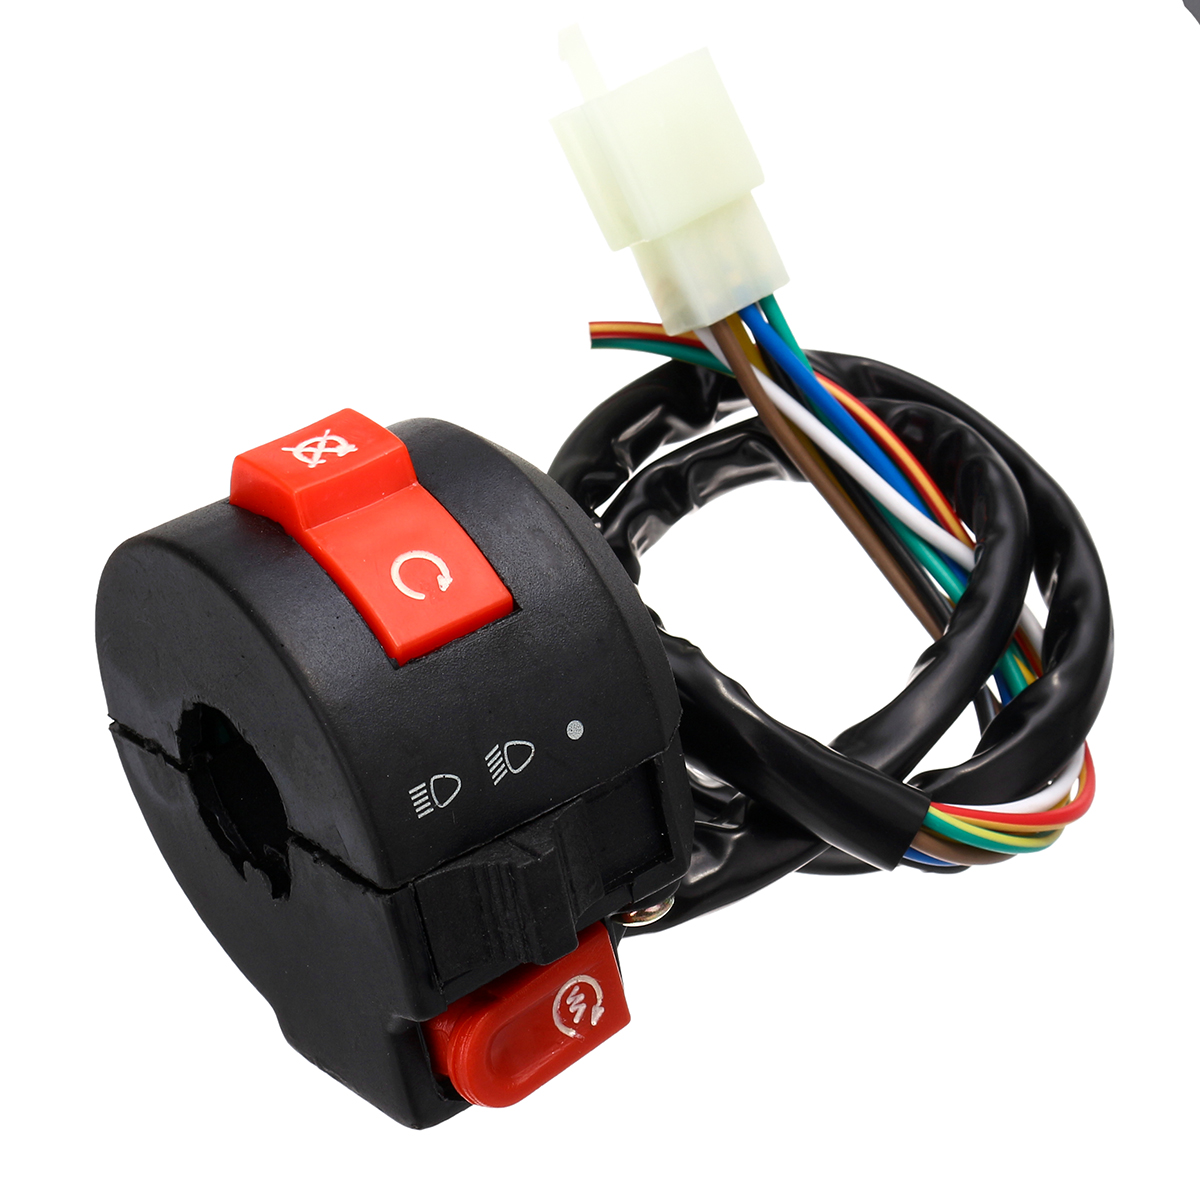 Full Electric Start Engine Wiring Harness Loom For Cdi 110cc 125cc Atv More Detailed Photos Quad